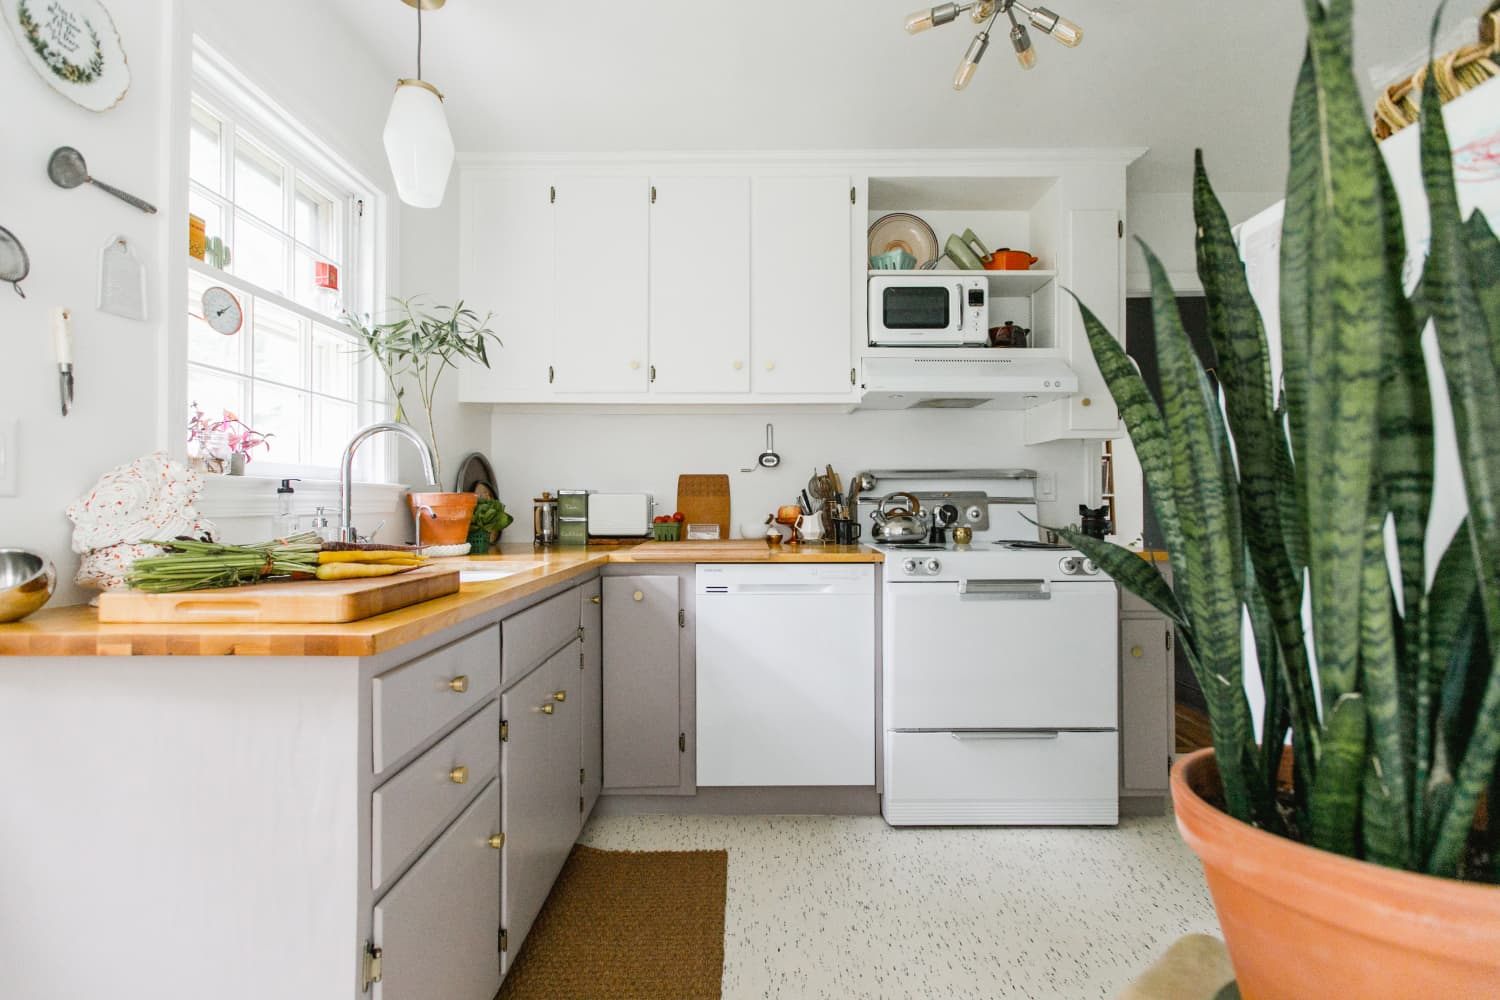 8 Kitchen Organizing Mistakes You're Probably Making (and How to Fix Them)